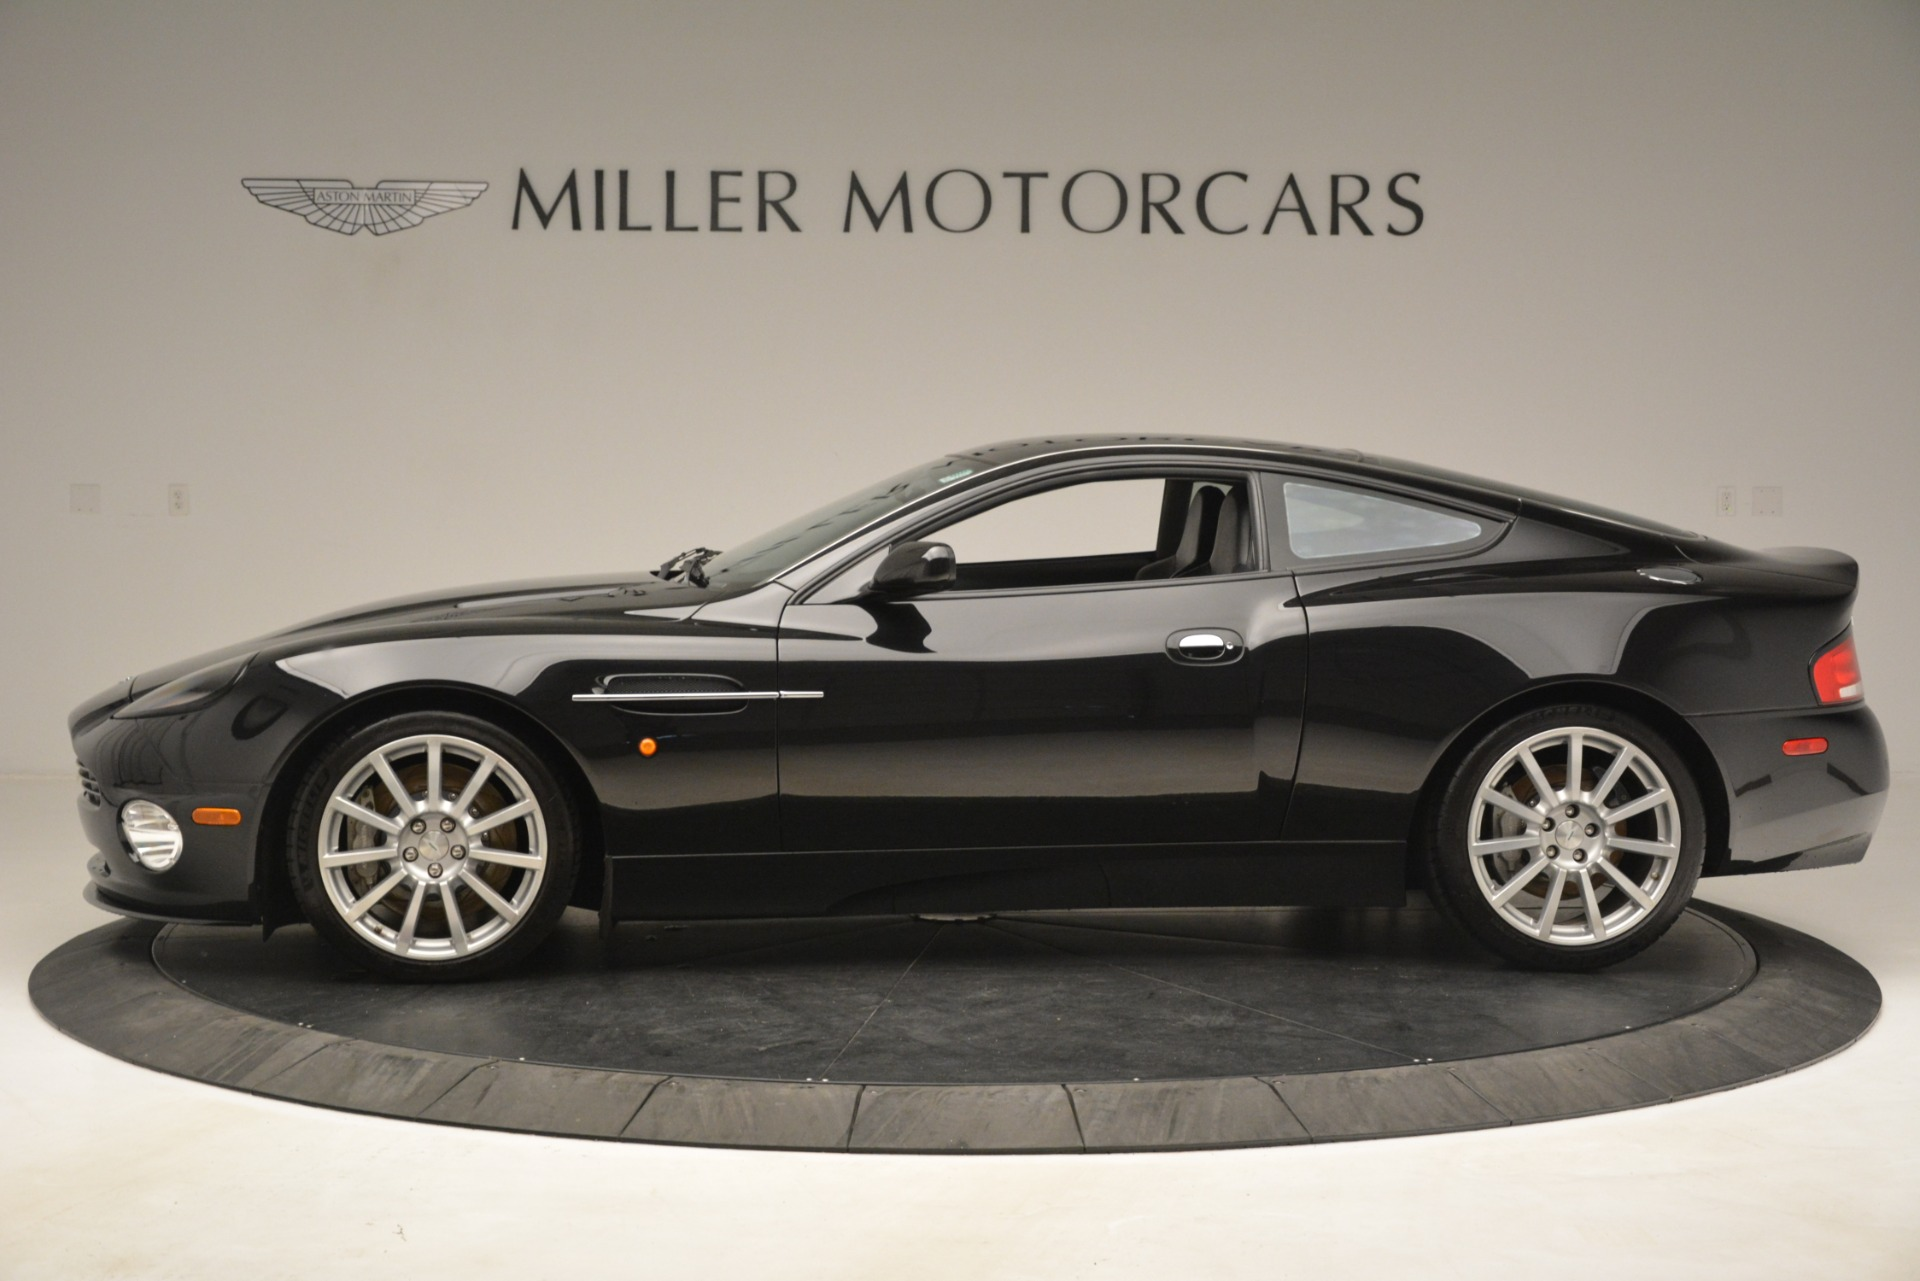 Used 2005 Aston Martin V12 Vanquish S Coupe For Sale In Westport, CT 3218_p3